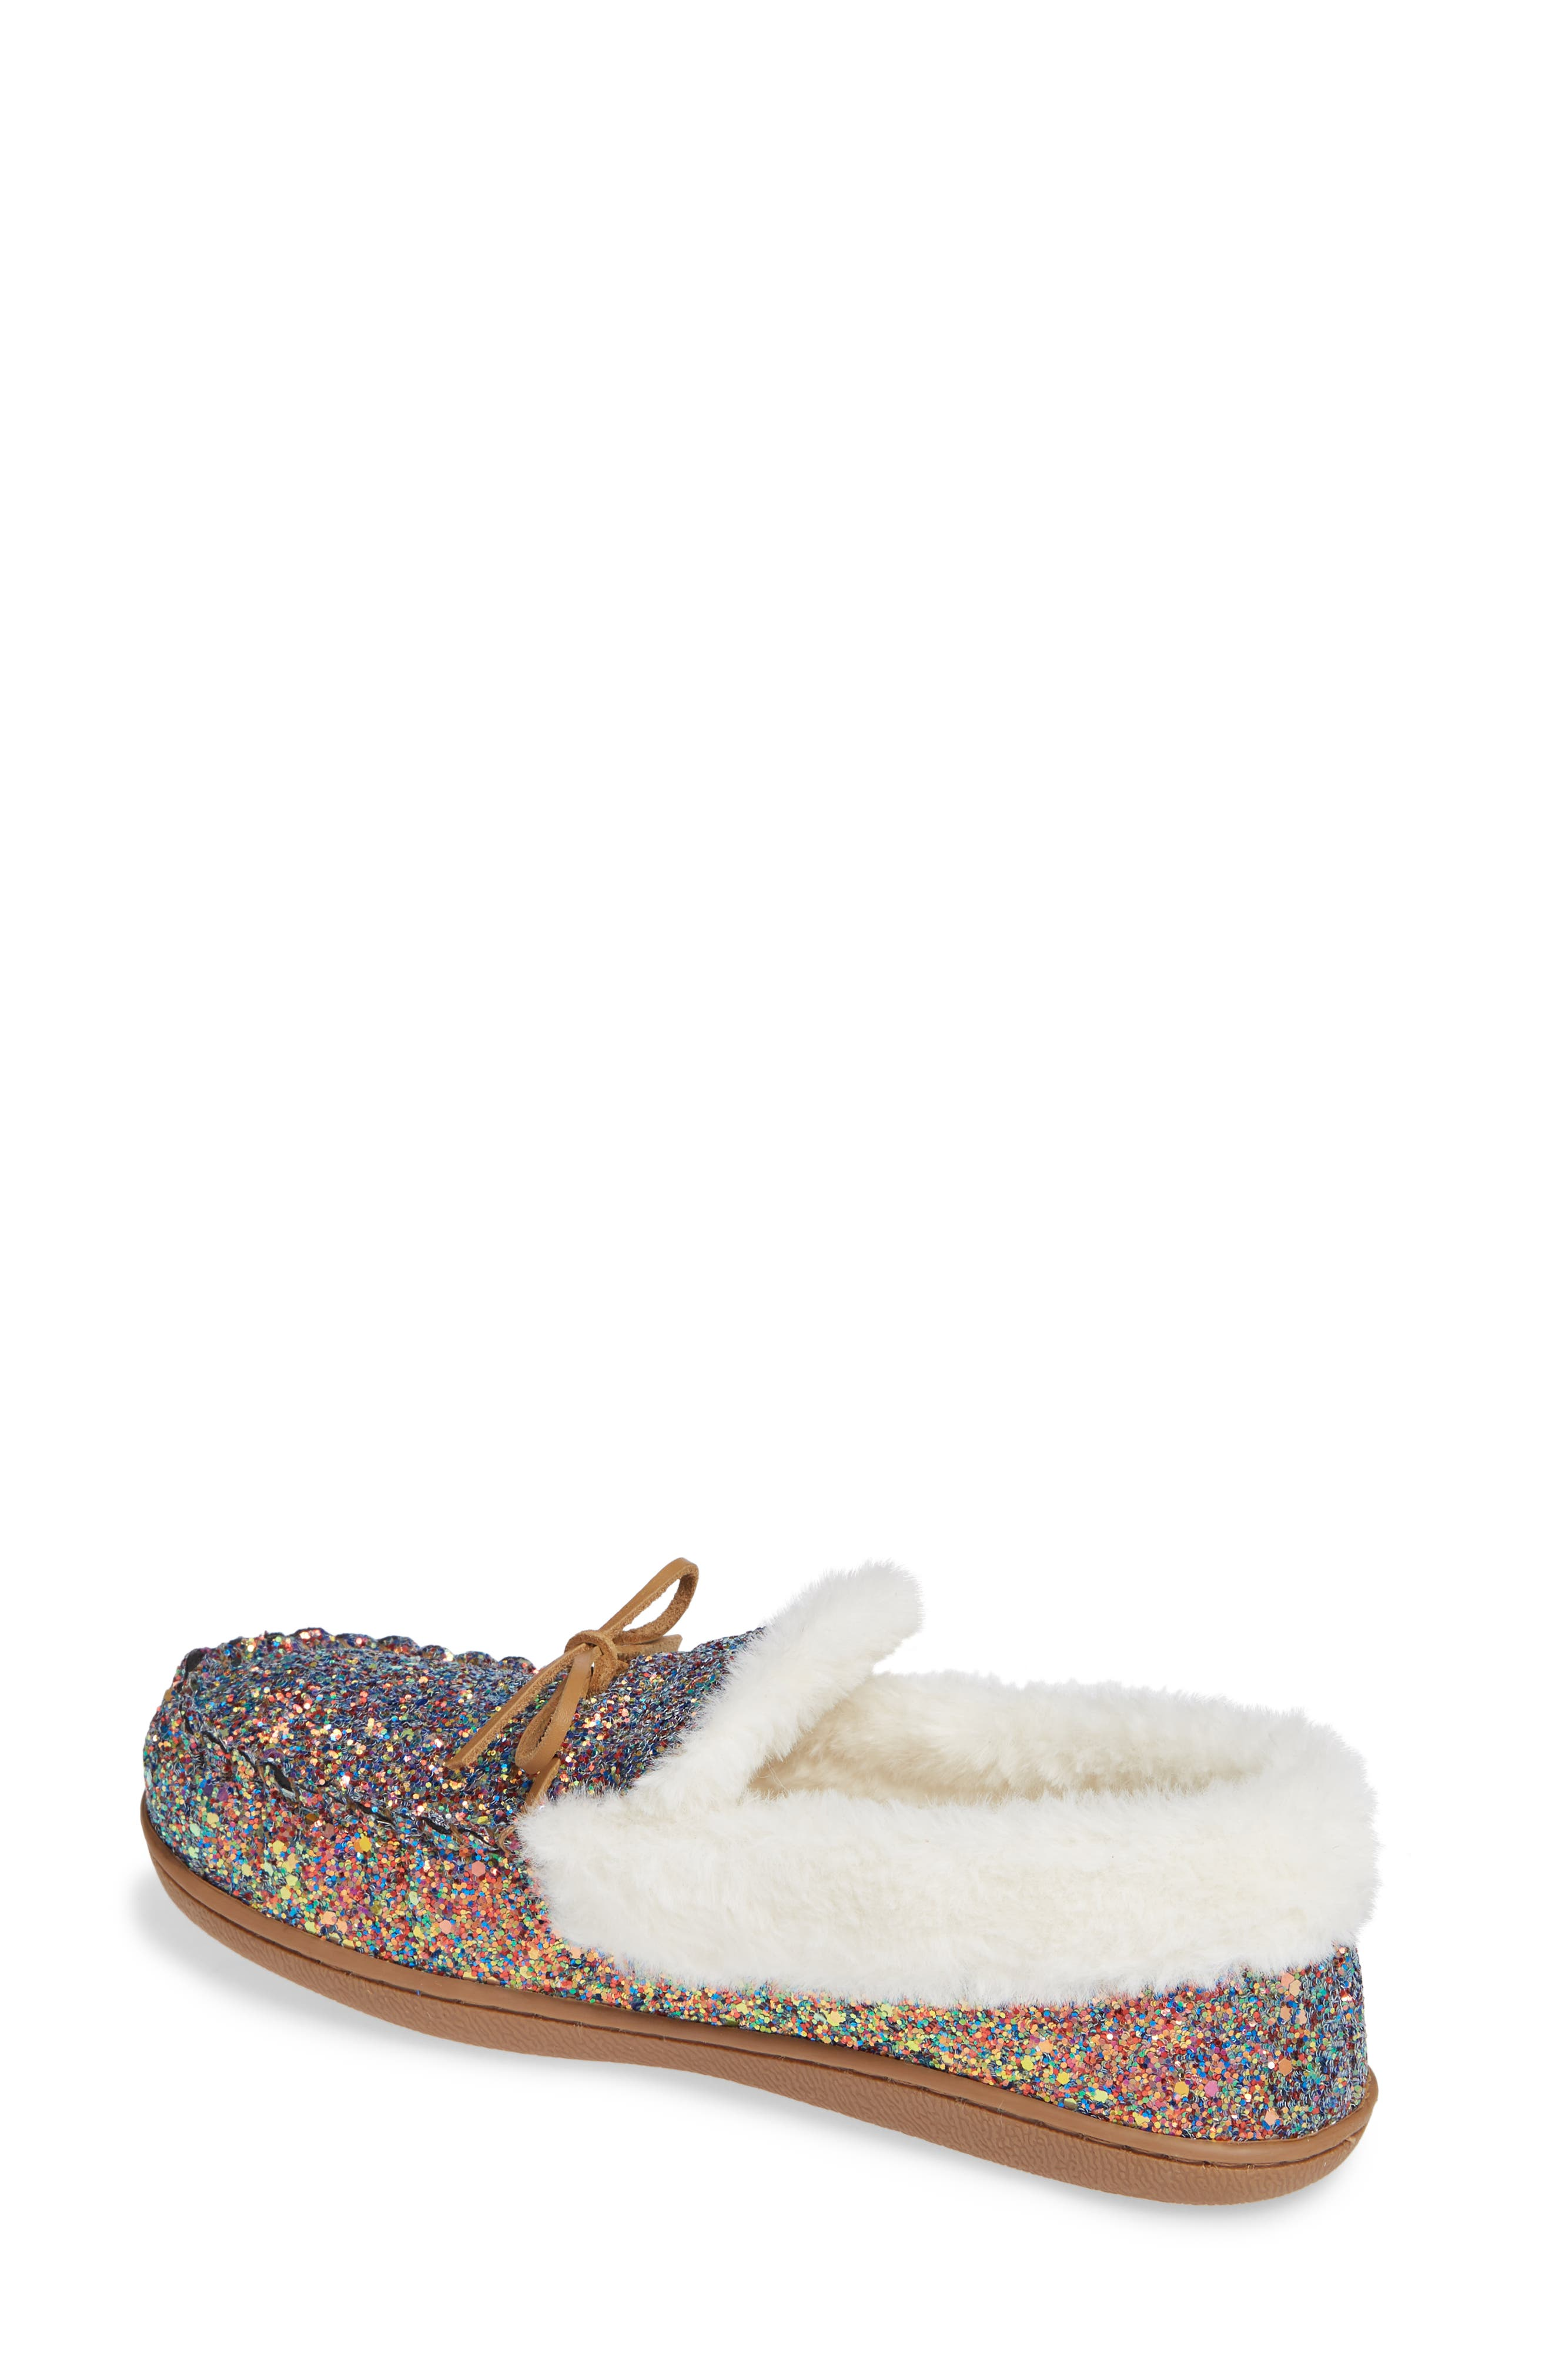 Poppy Moc Slipper,                             Alternate thumbnail 2, color,                             PINK MULTI GLITTER